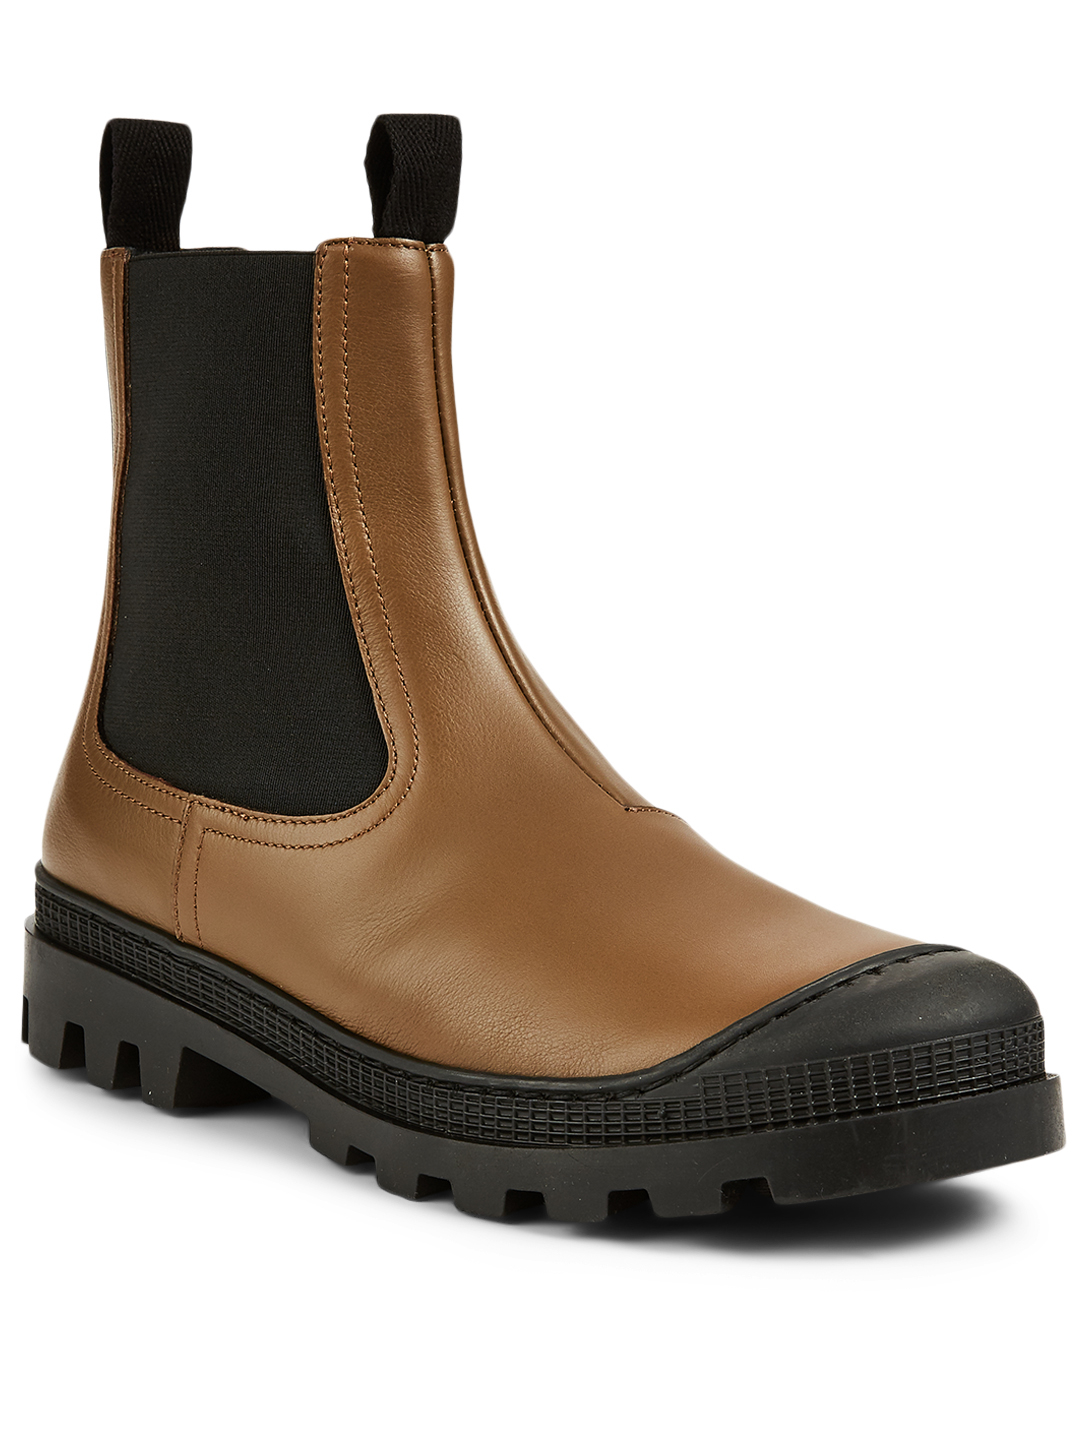 LOEWE Leather Chelsea Boots Women's Green